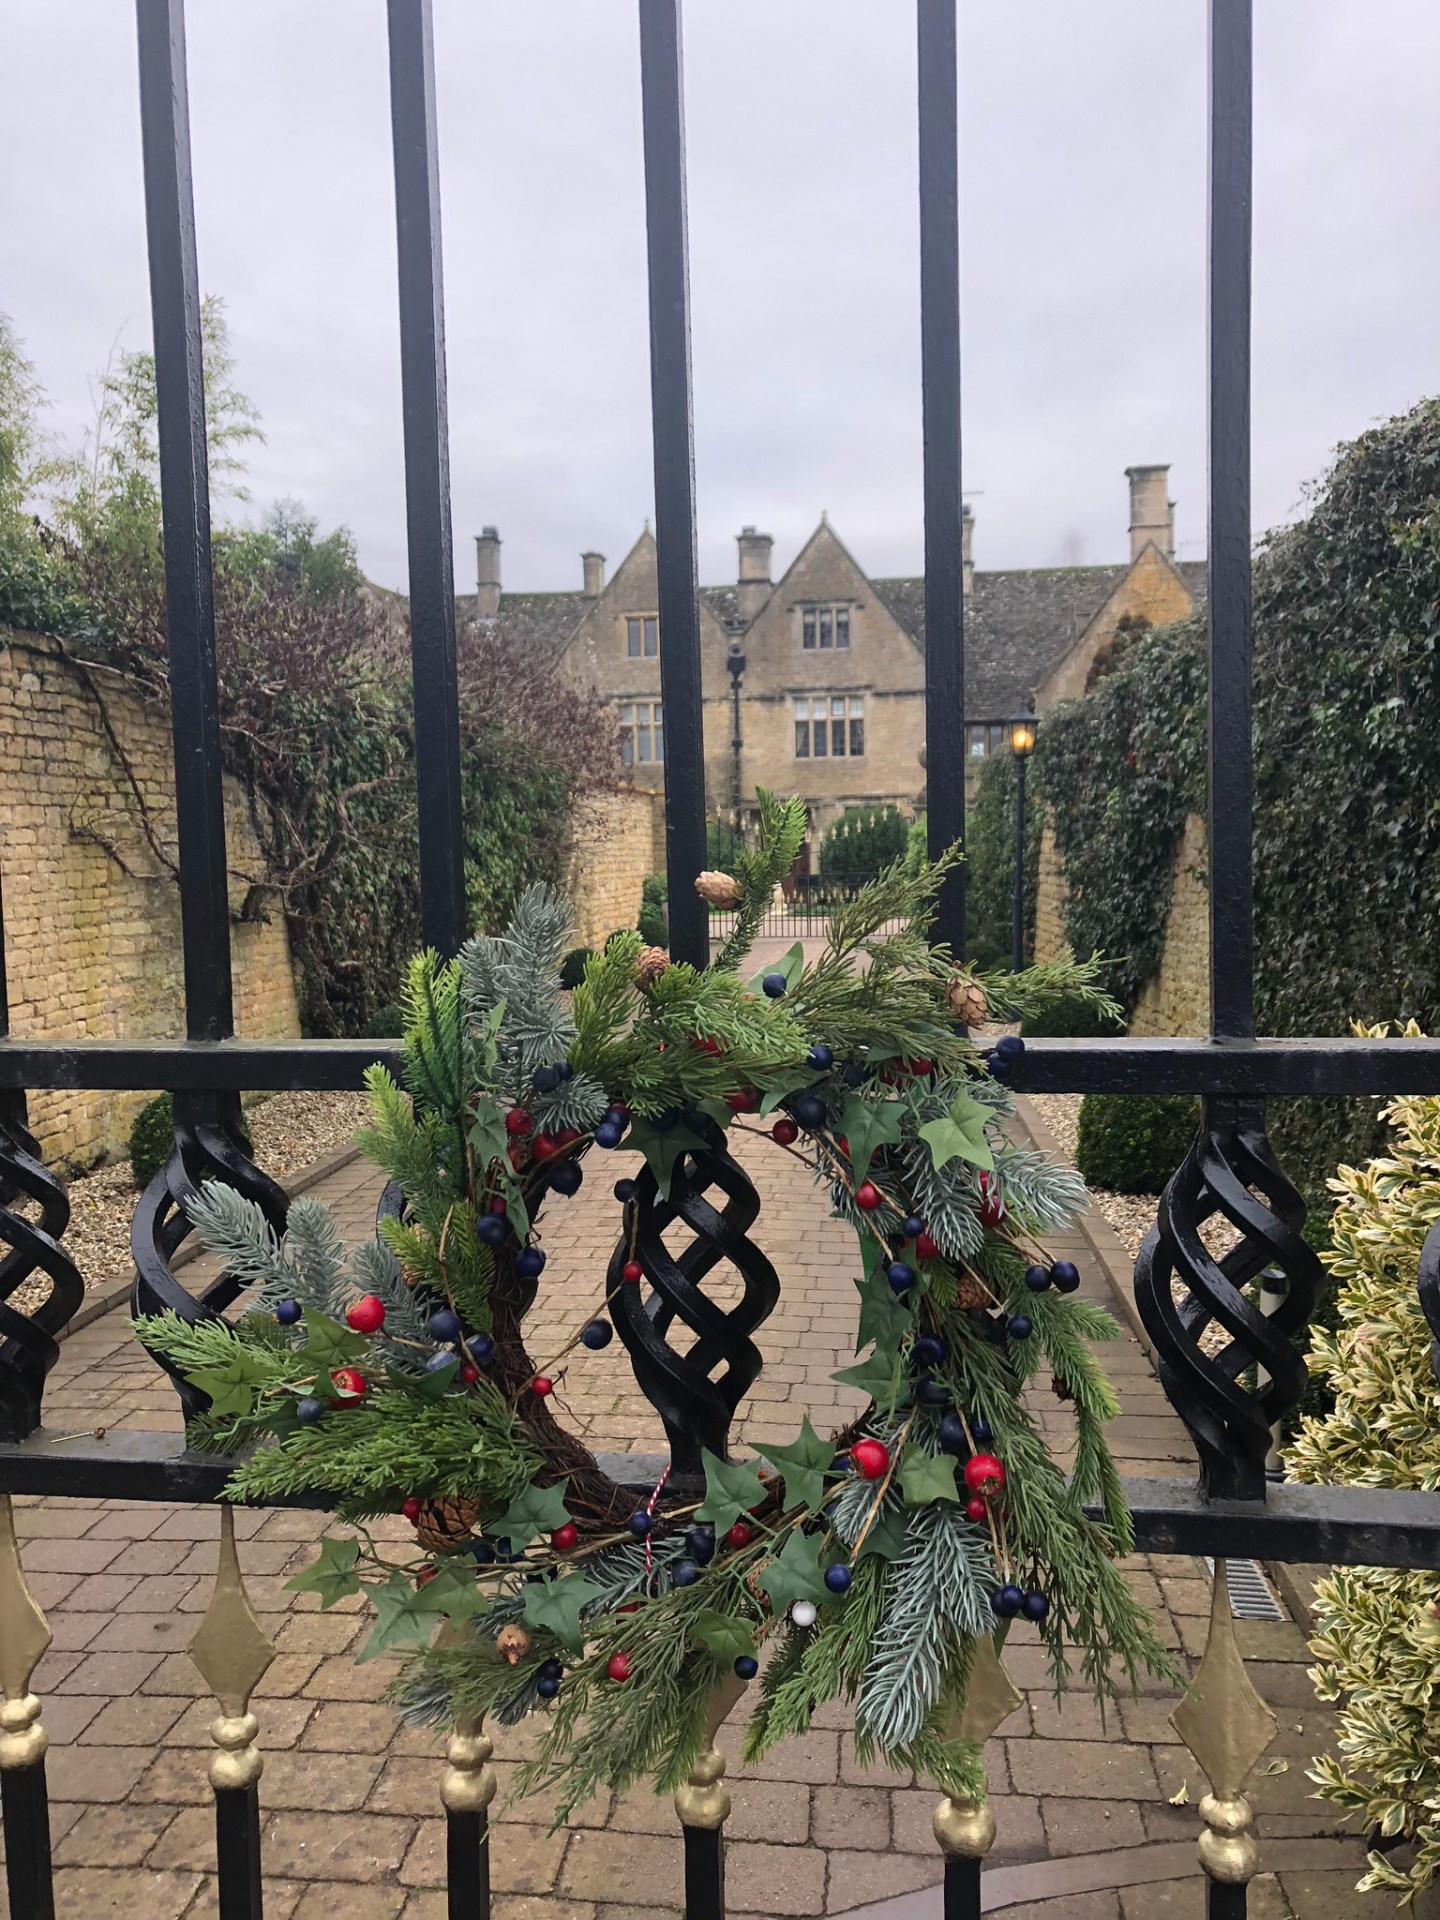 Home for the holidays: Christmas wreath on the Manor, Bourton on the Water